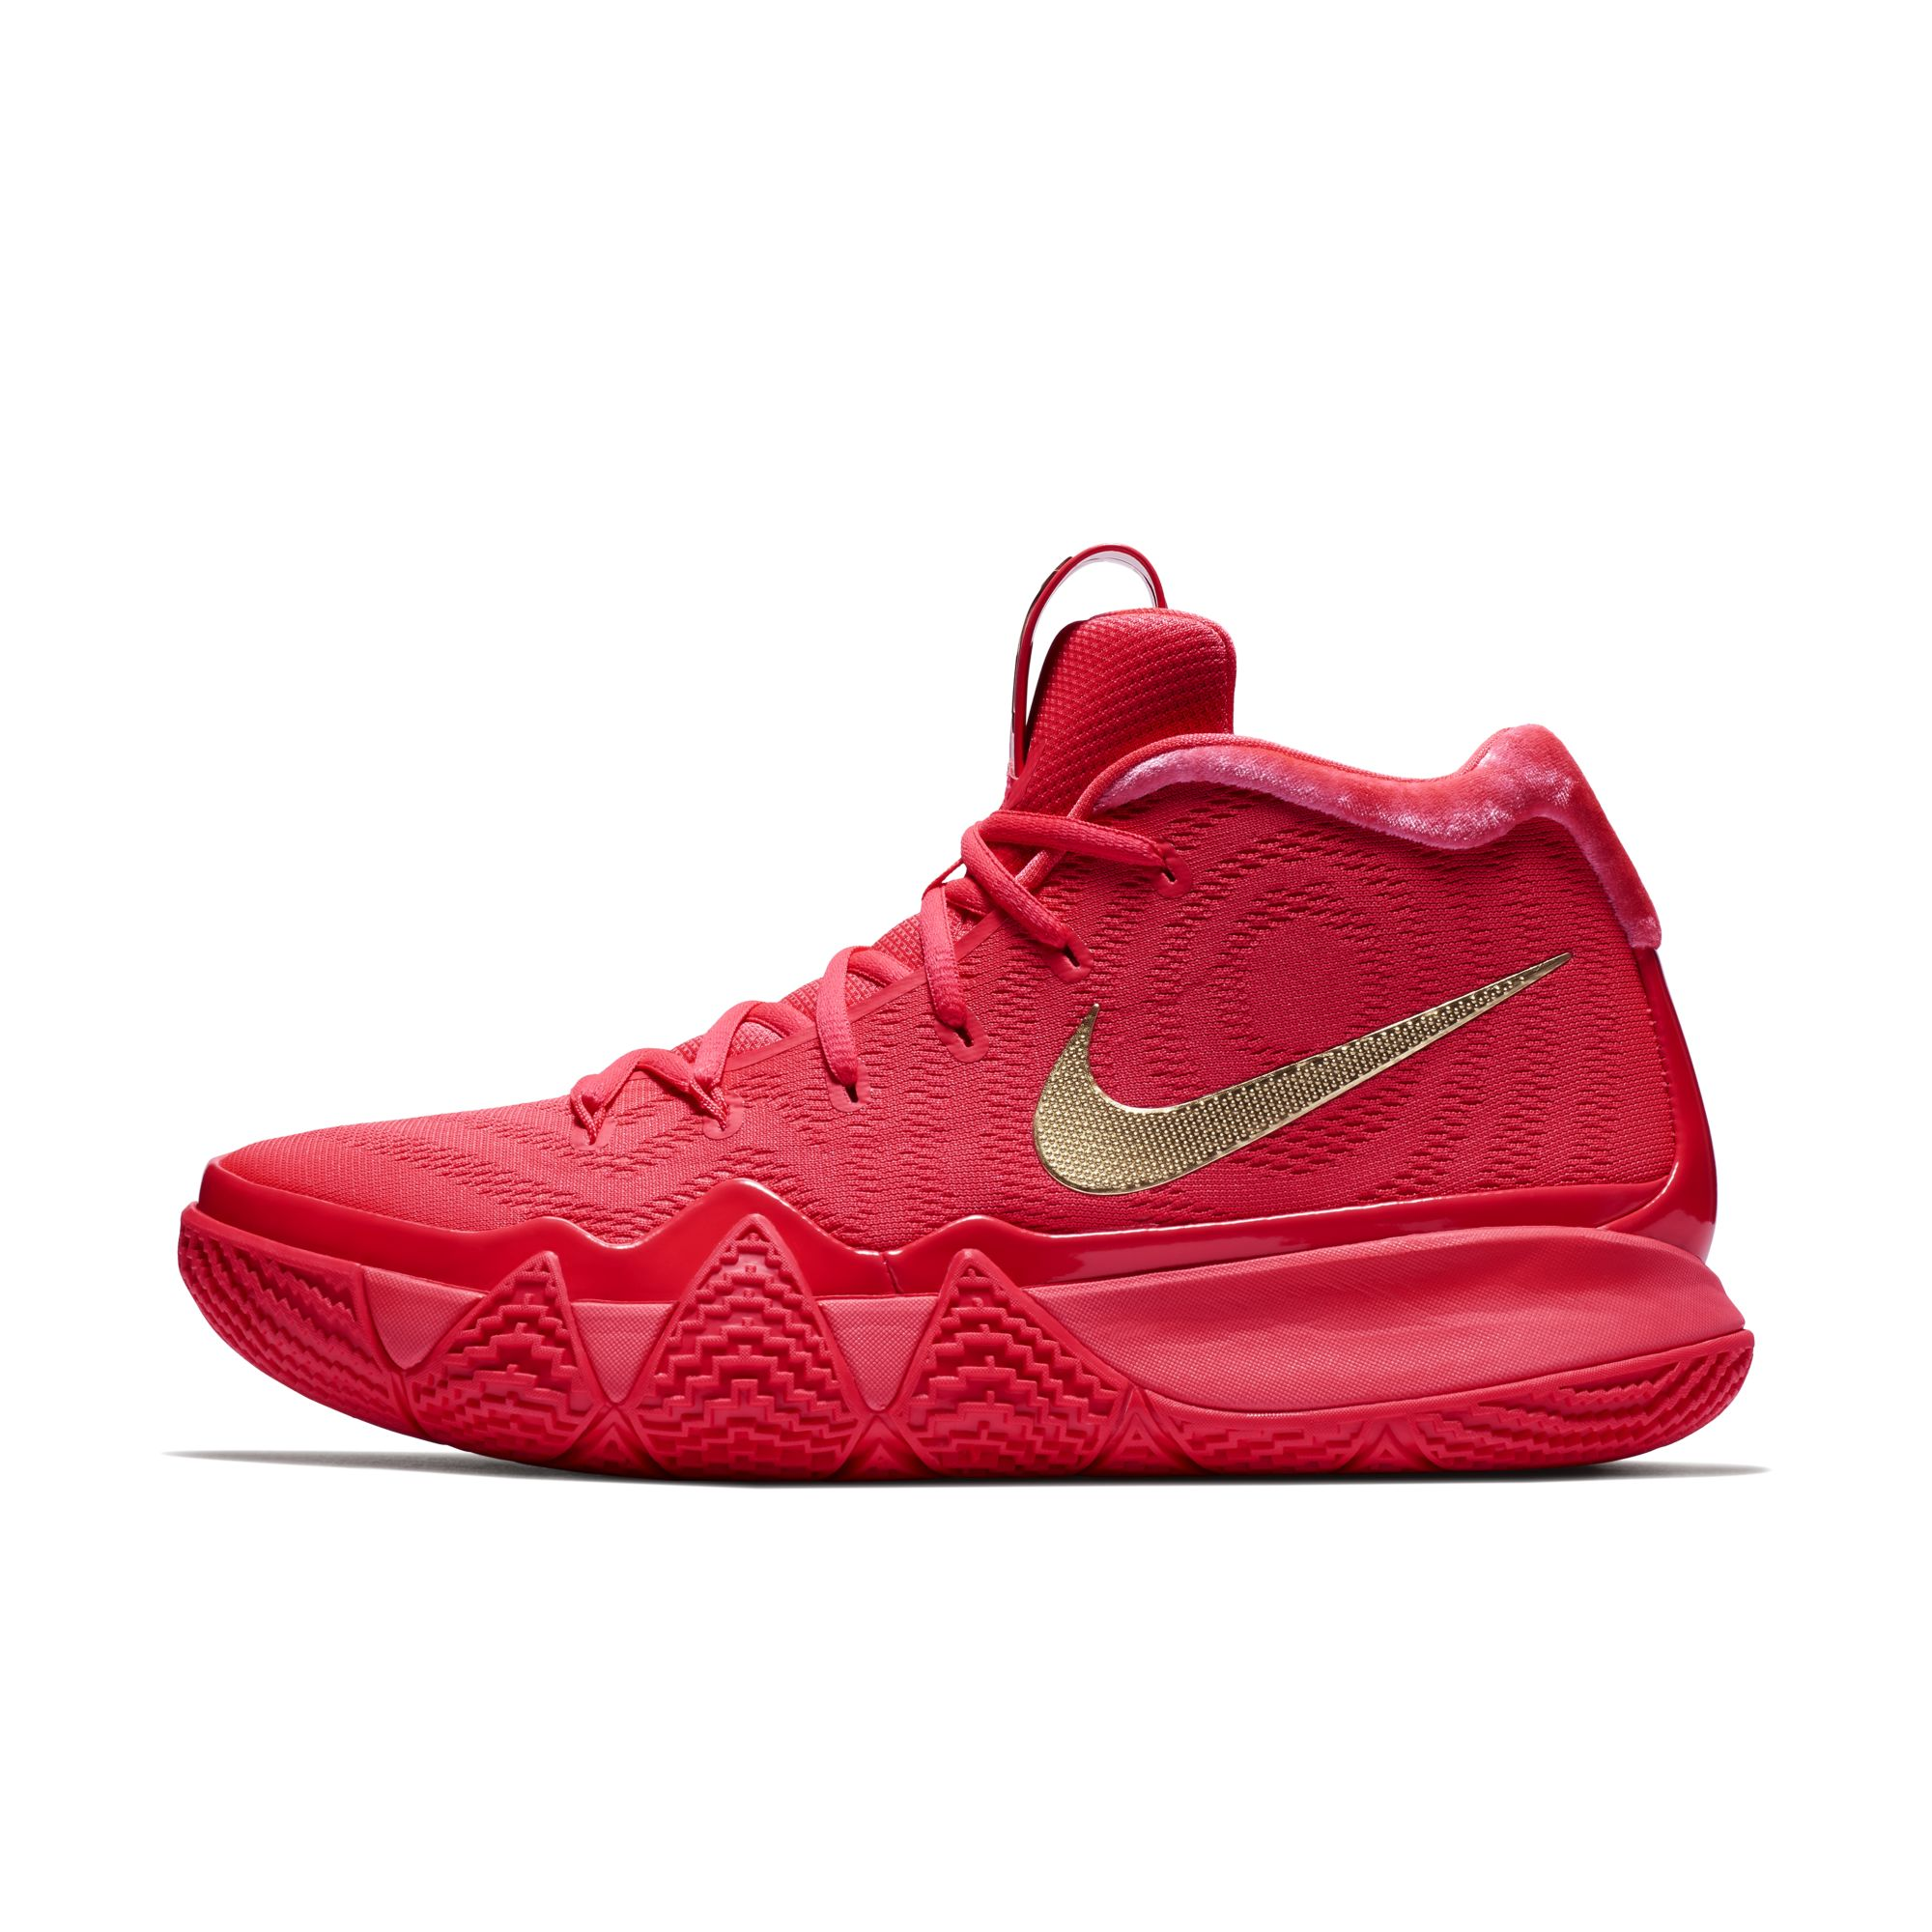 The Nike Kyrie 4 'Red Carpet' Was a